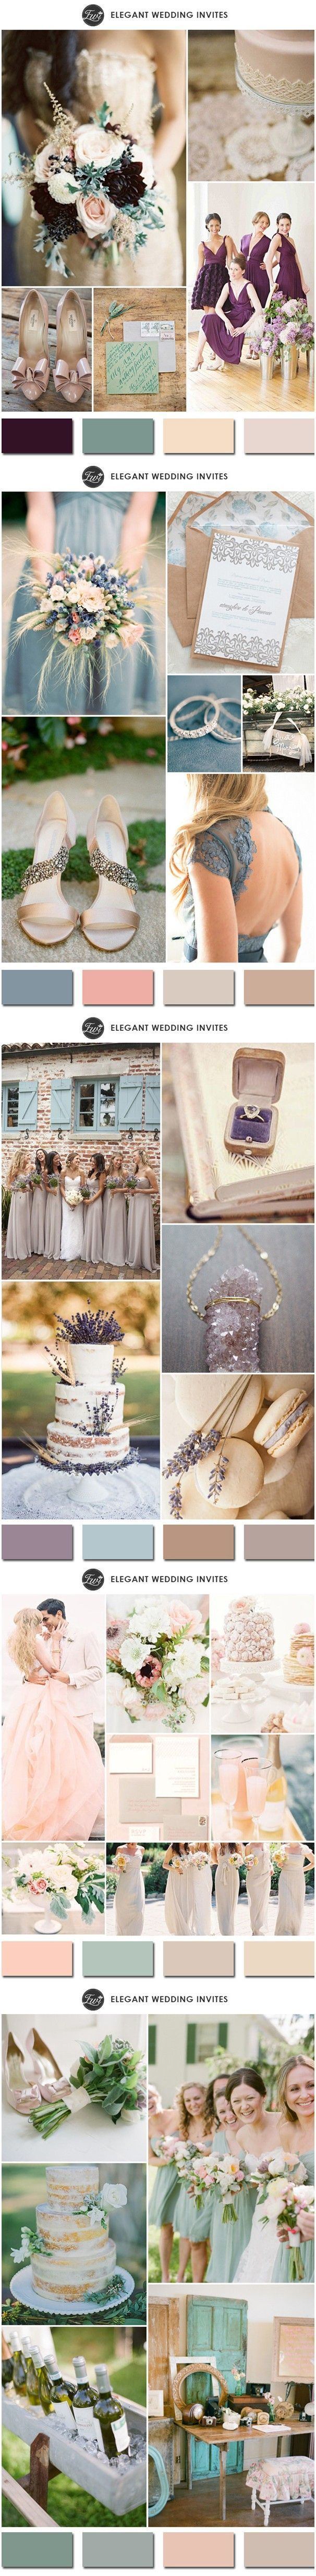 2015 Trending Neutral Wedding Color Ideas with Different Colors #weddingcolors